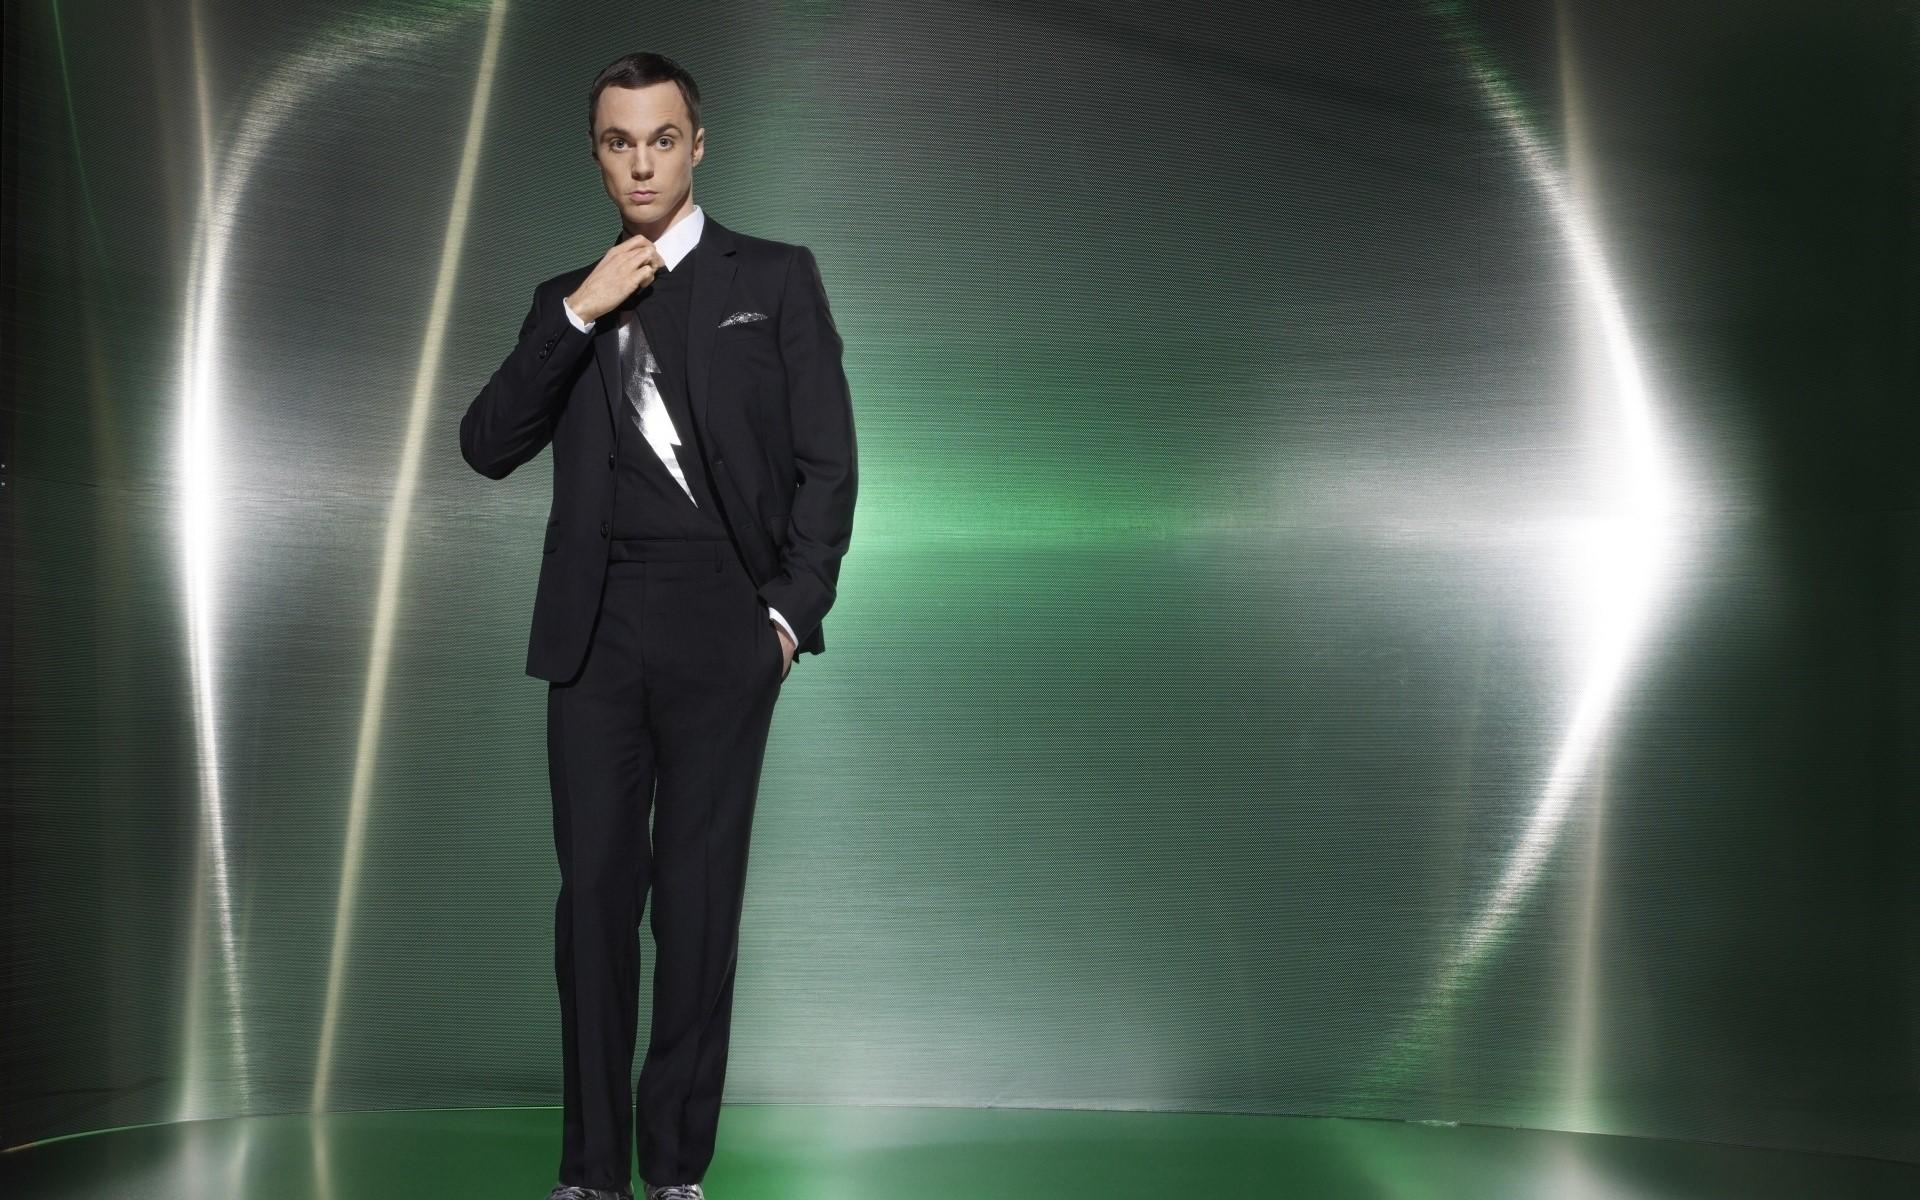 Jim parsons, Guy, Actor, Tuxedo wallpaper and background